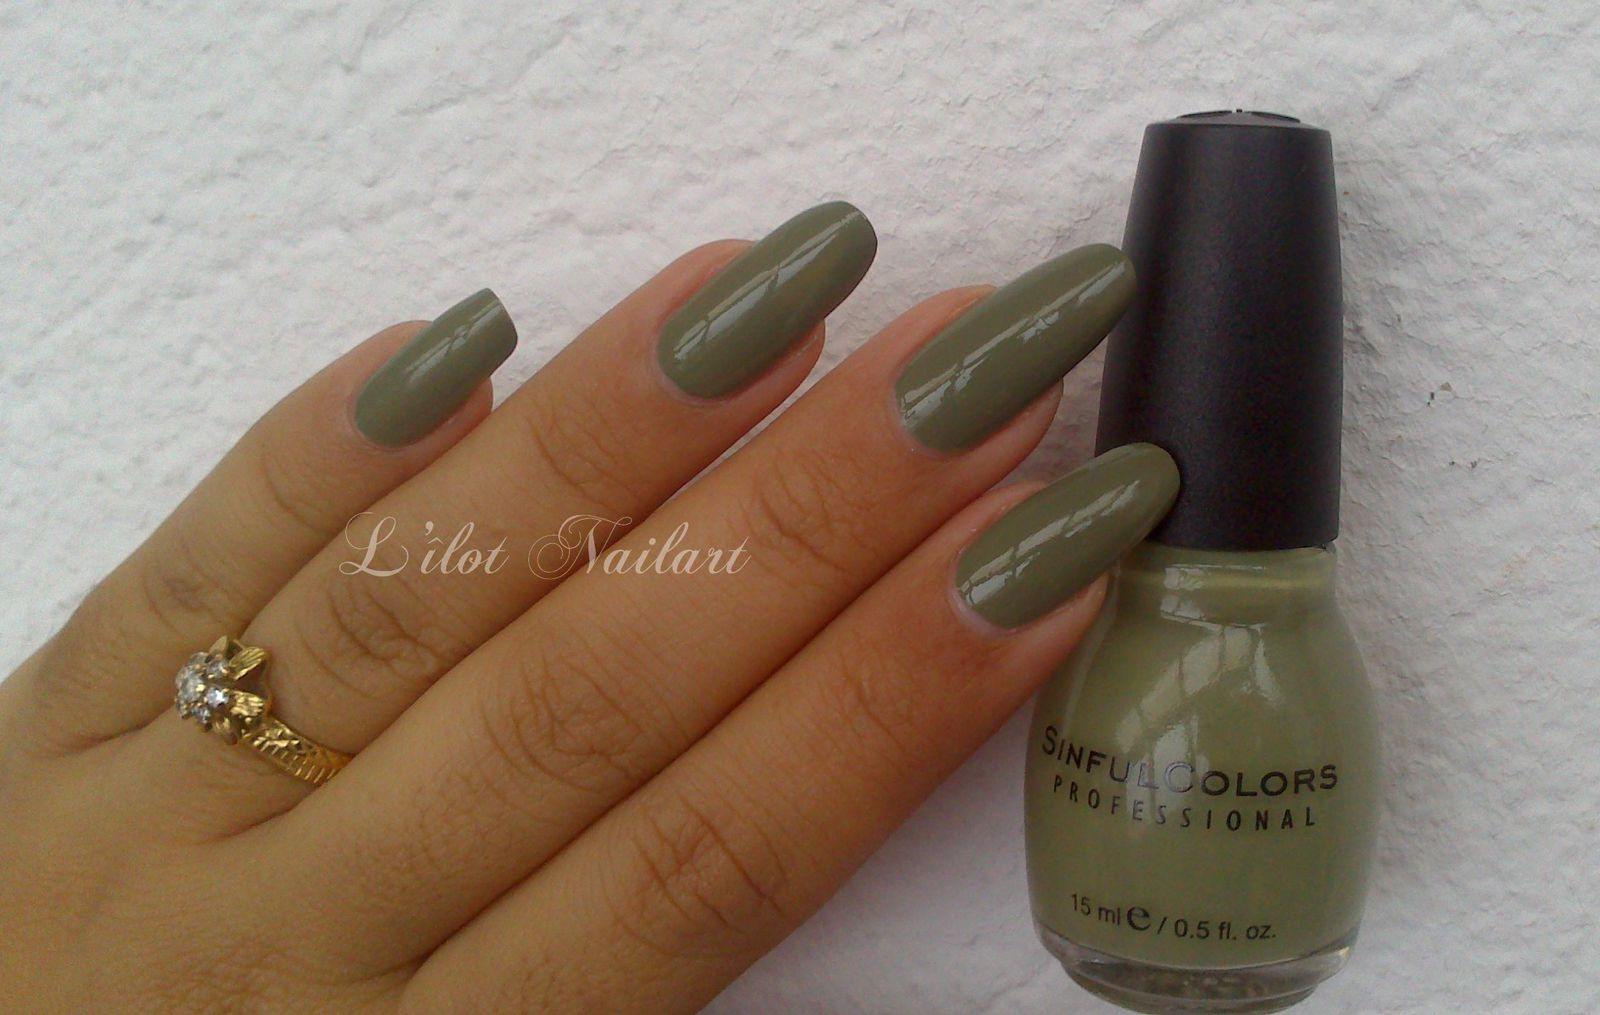 Vernis Sinfulcolors